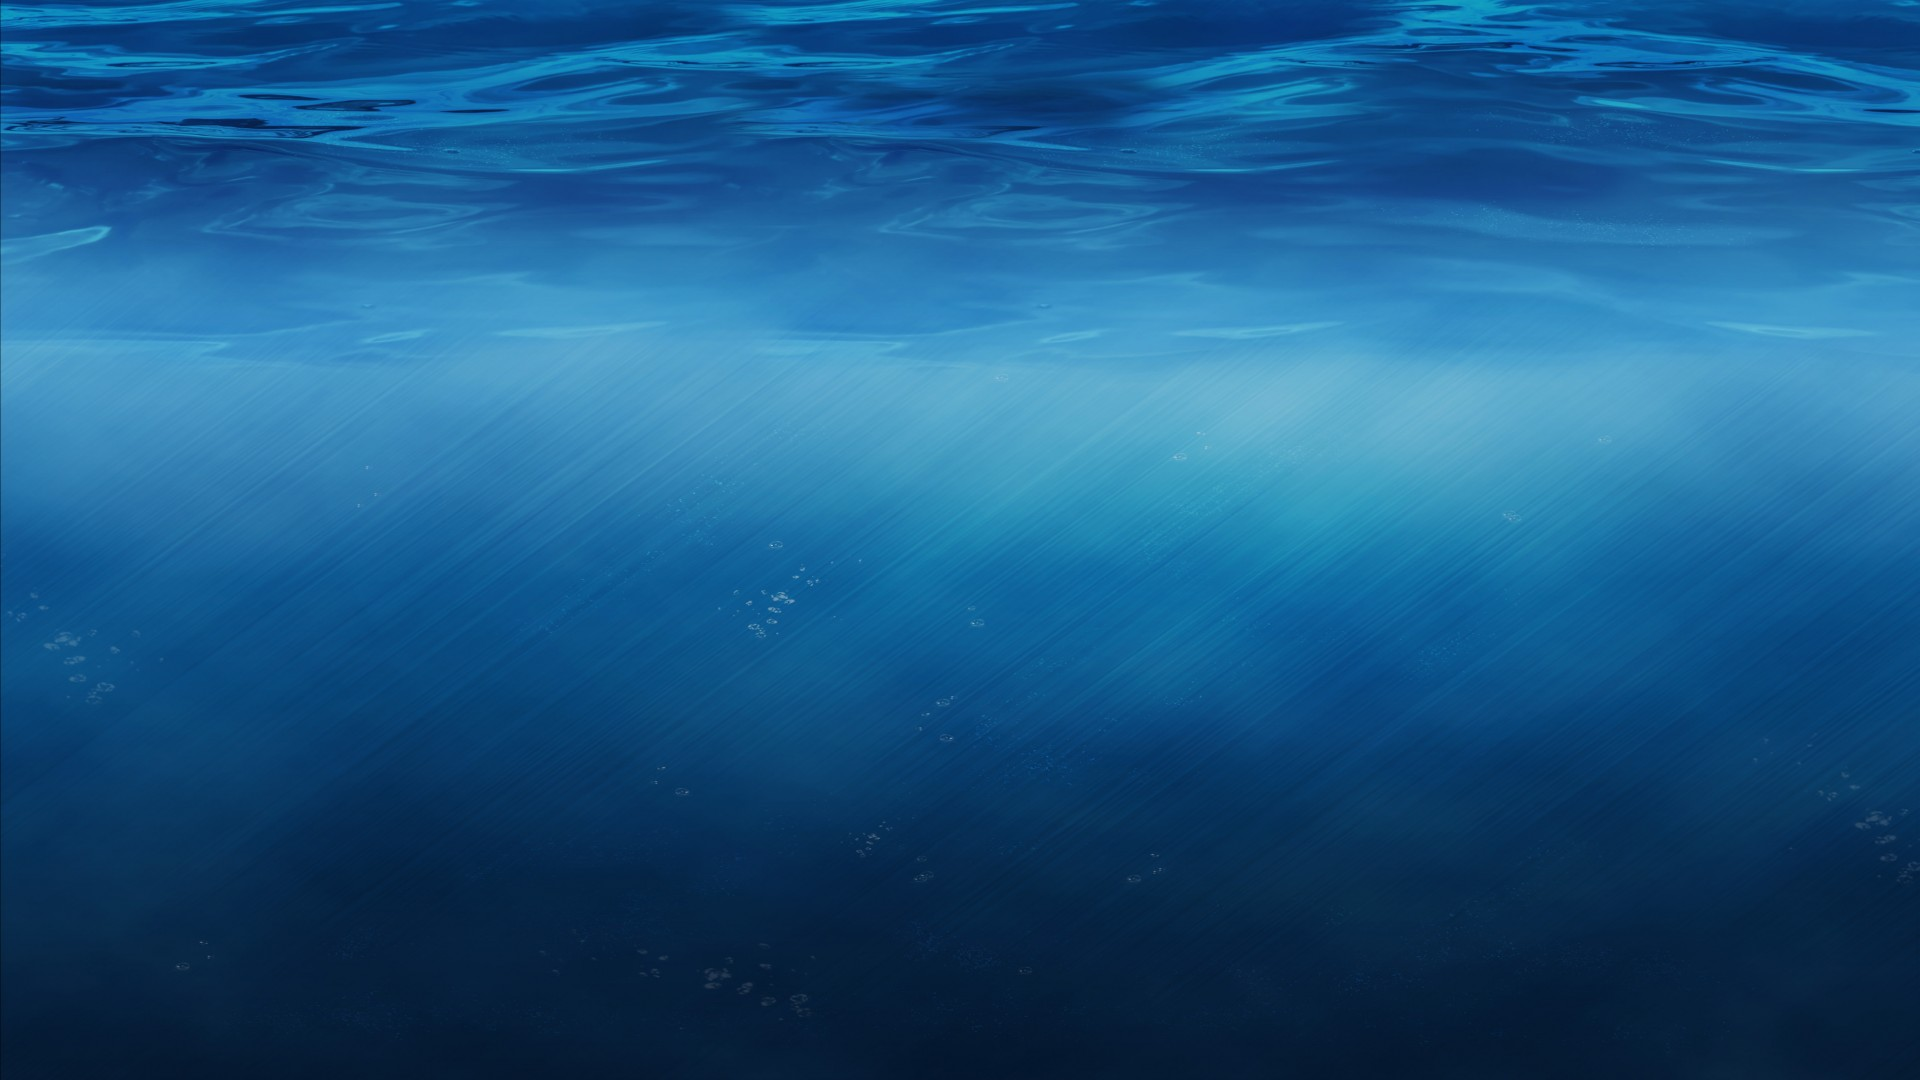 OSX, 4k, 5k wallpaper, underwater (horizontal)